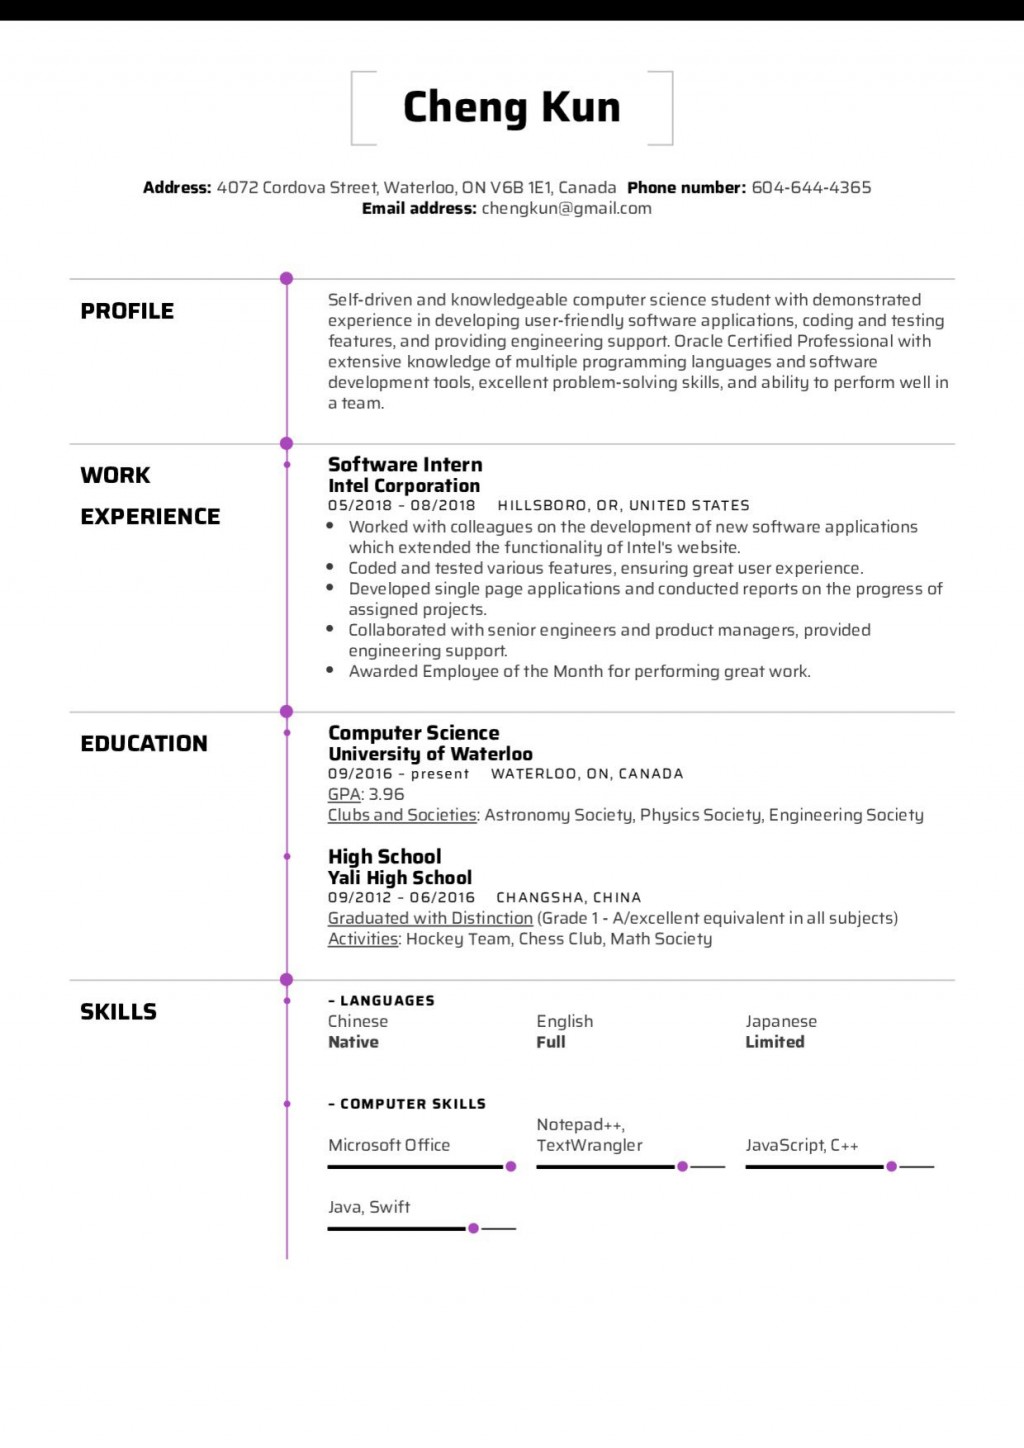 006 Exceptional Resume Template For Student Highest Clarity  Students High School Internship Google Doc Openoffice Free DownloadLarge